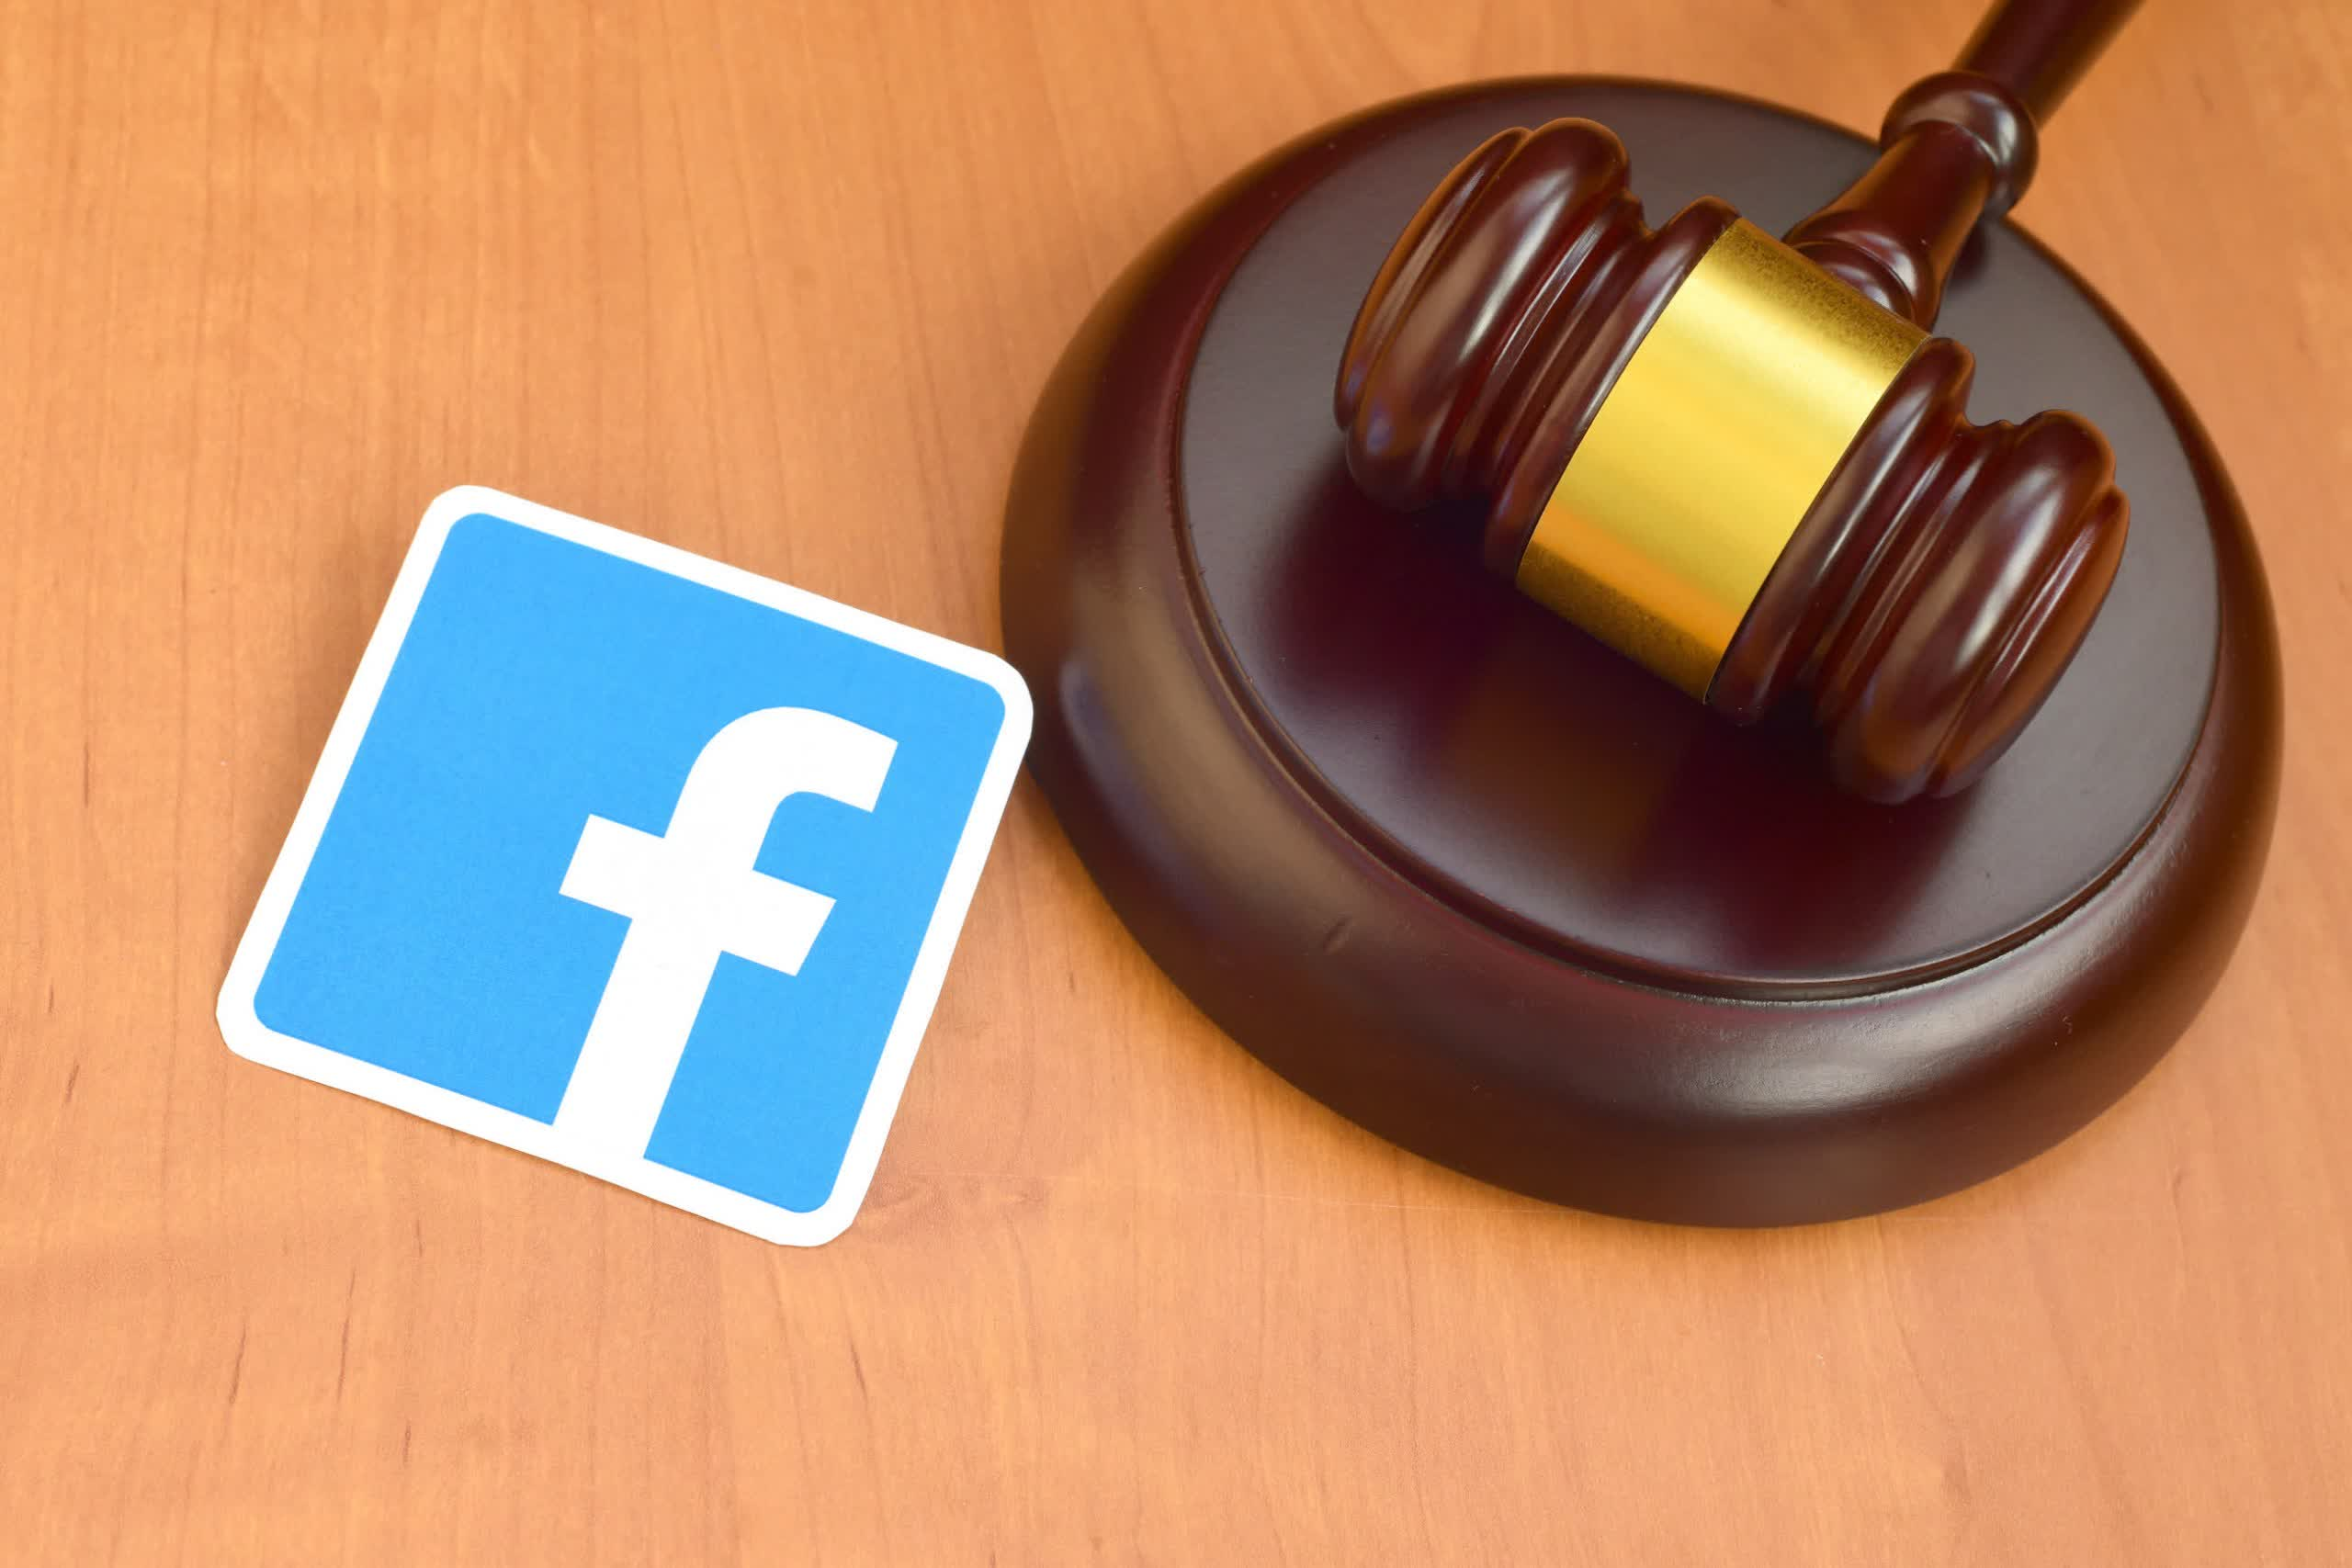 Court documents reveal Facebook intentionally overestimated audience reach numbers to advertisers